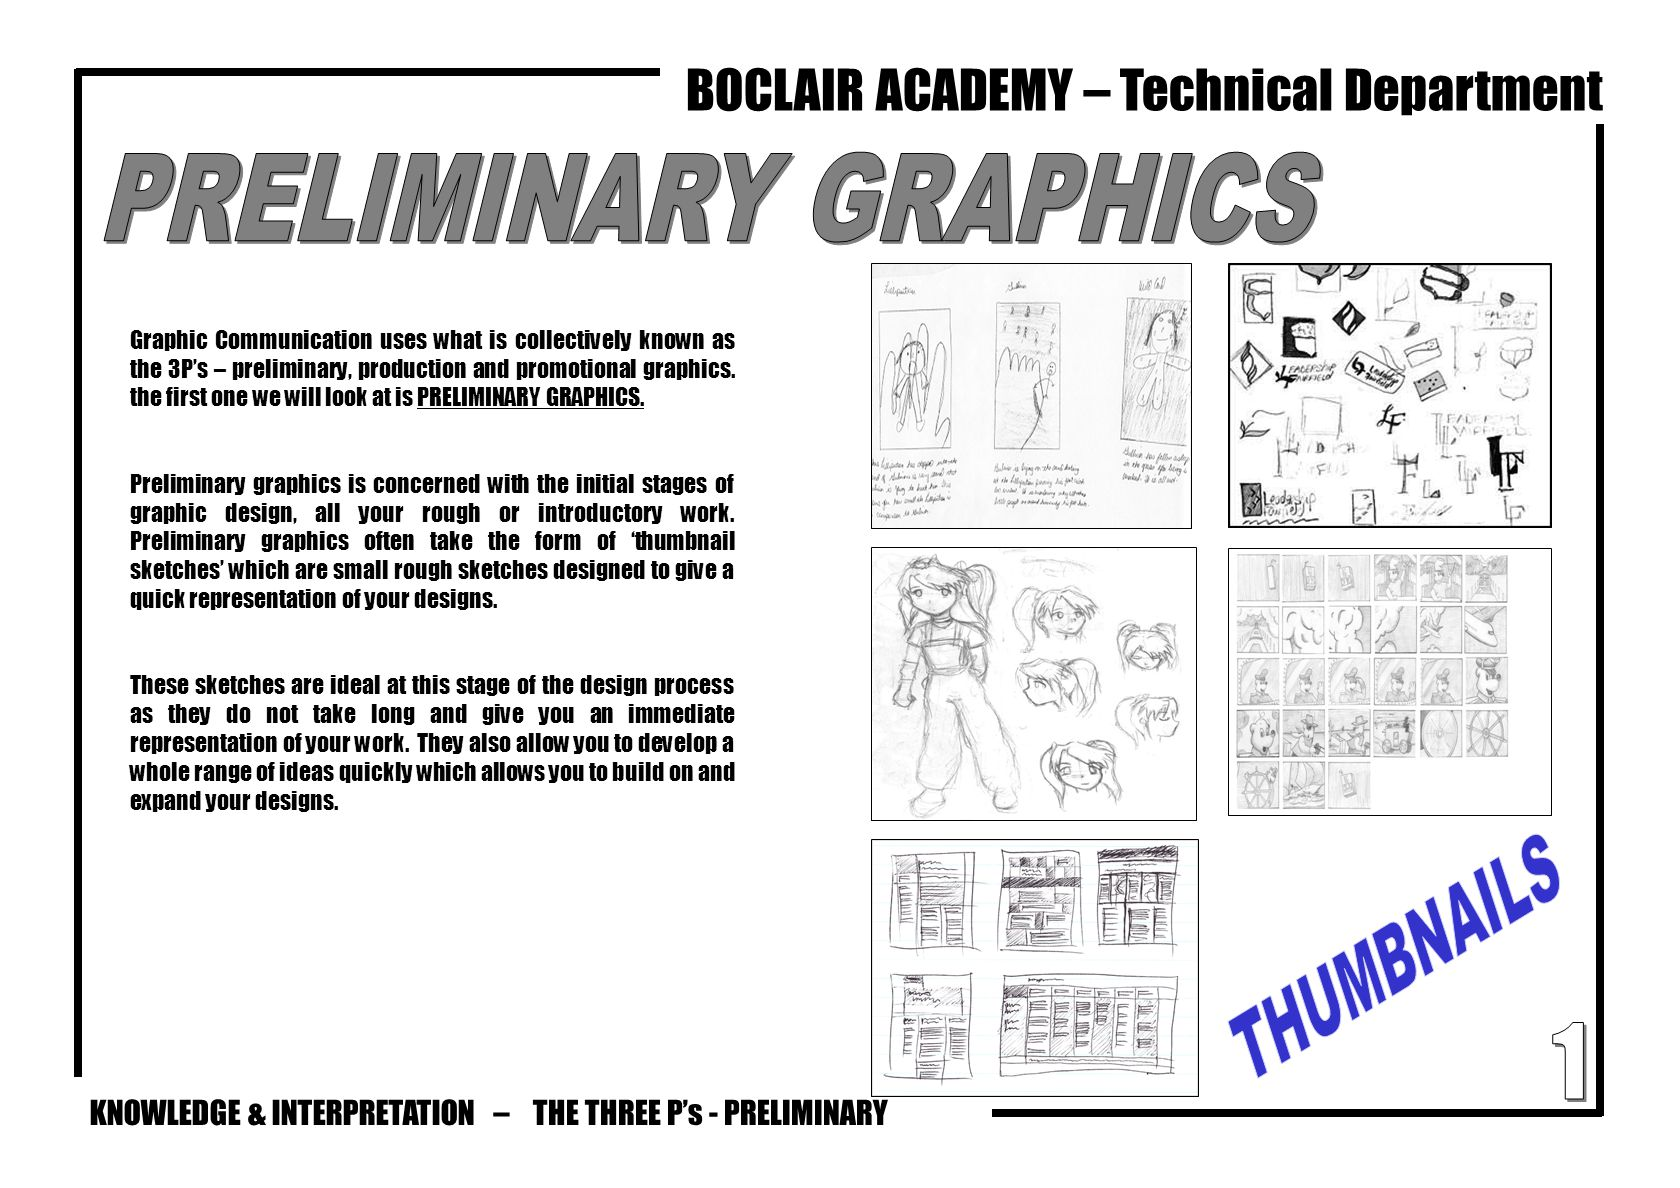 PRELIMINARY GRAPHICS THUMBNAILS 1 THE THREE P's - PRELIMINARY